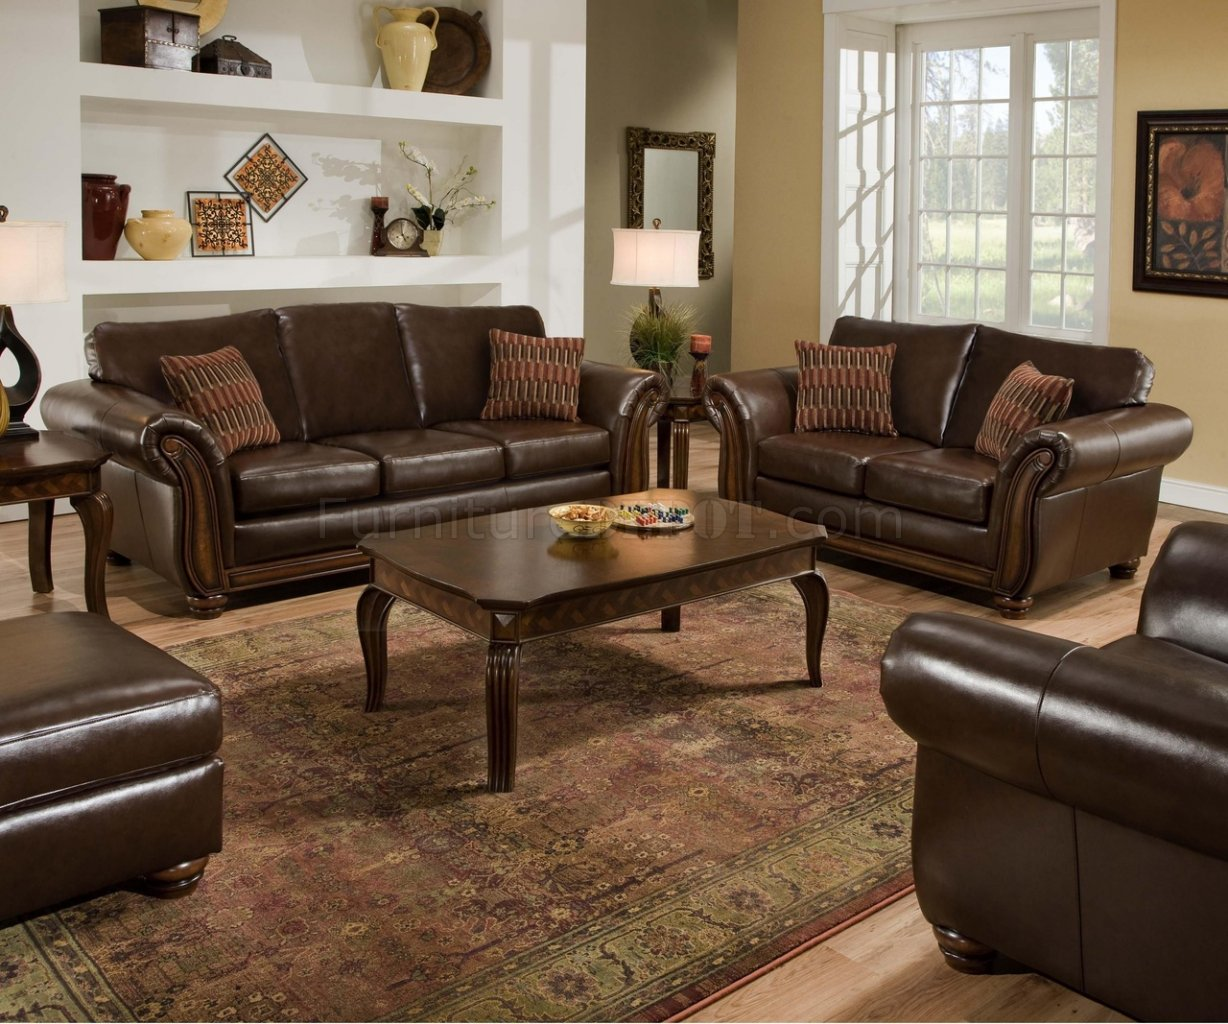 Vintage Soft Bonded Leather Sofa & Loveseat Set w/Flair Arms